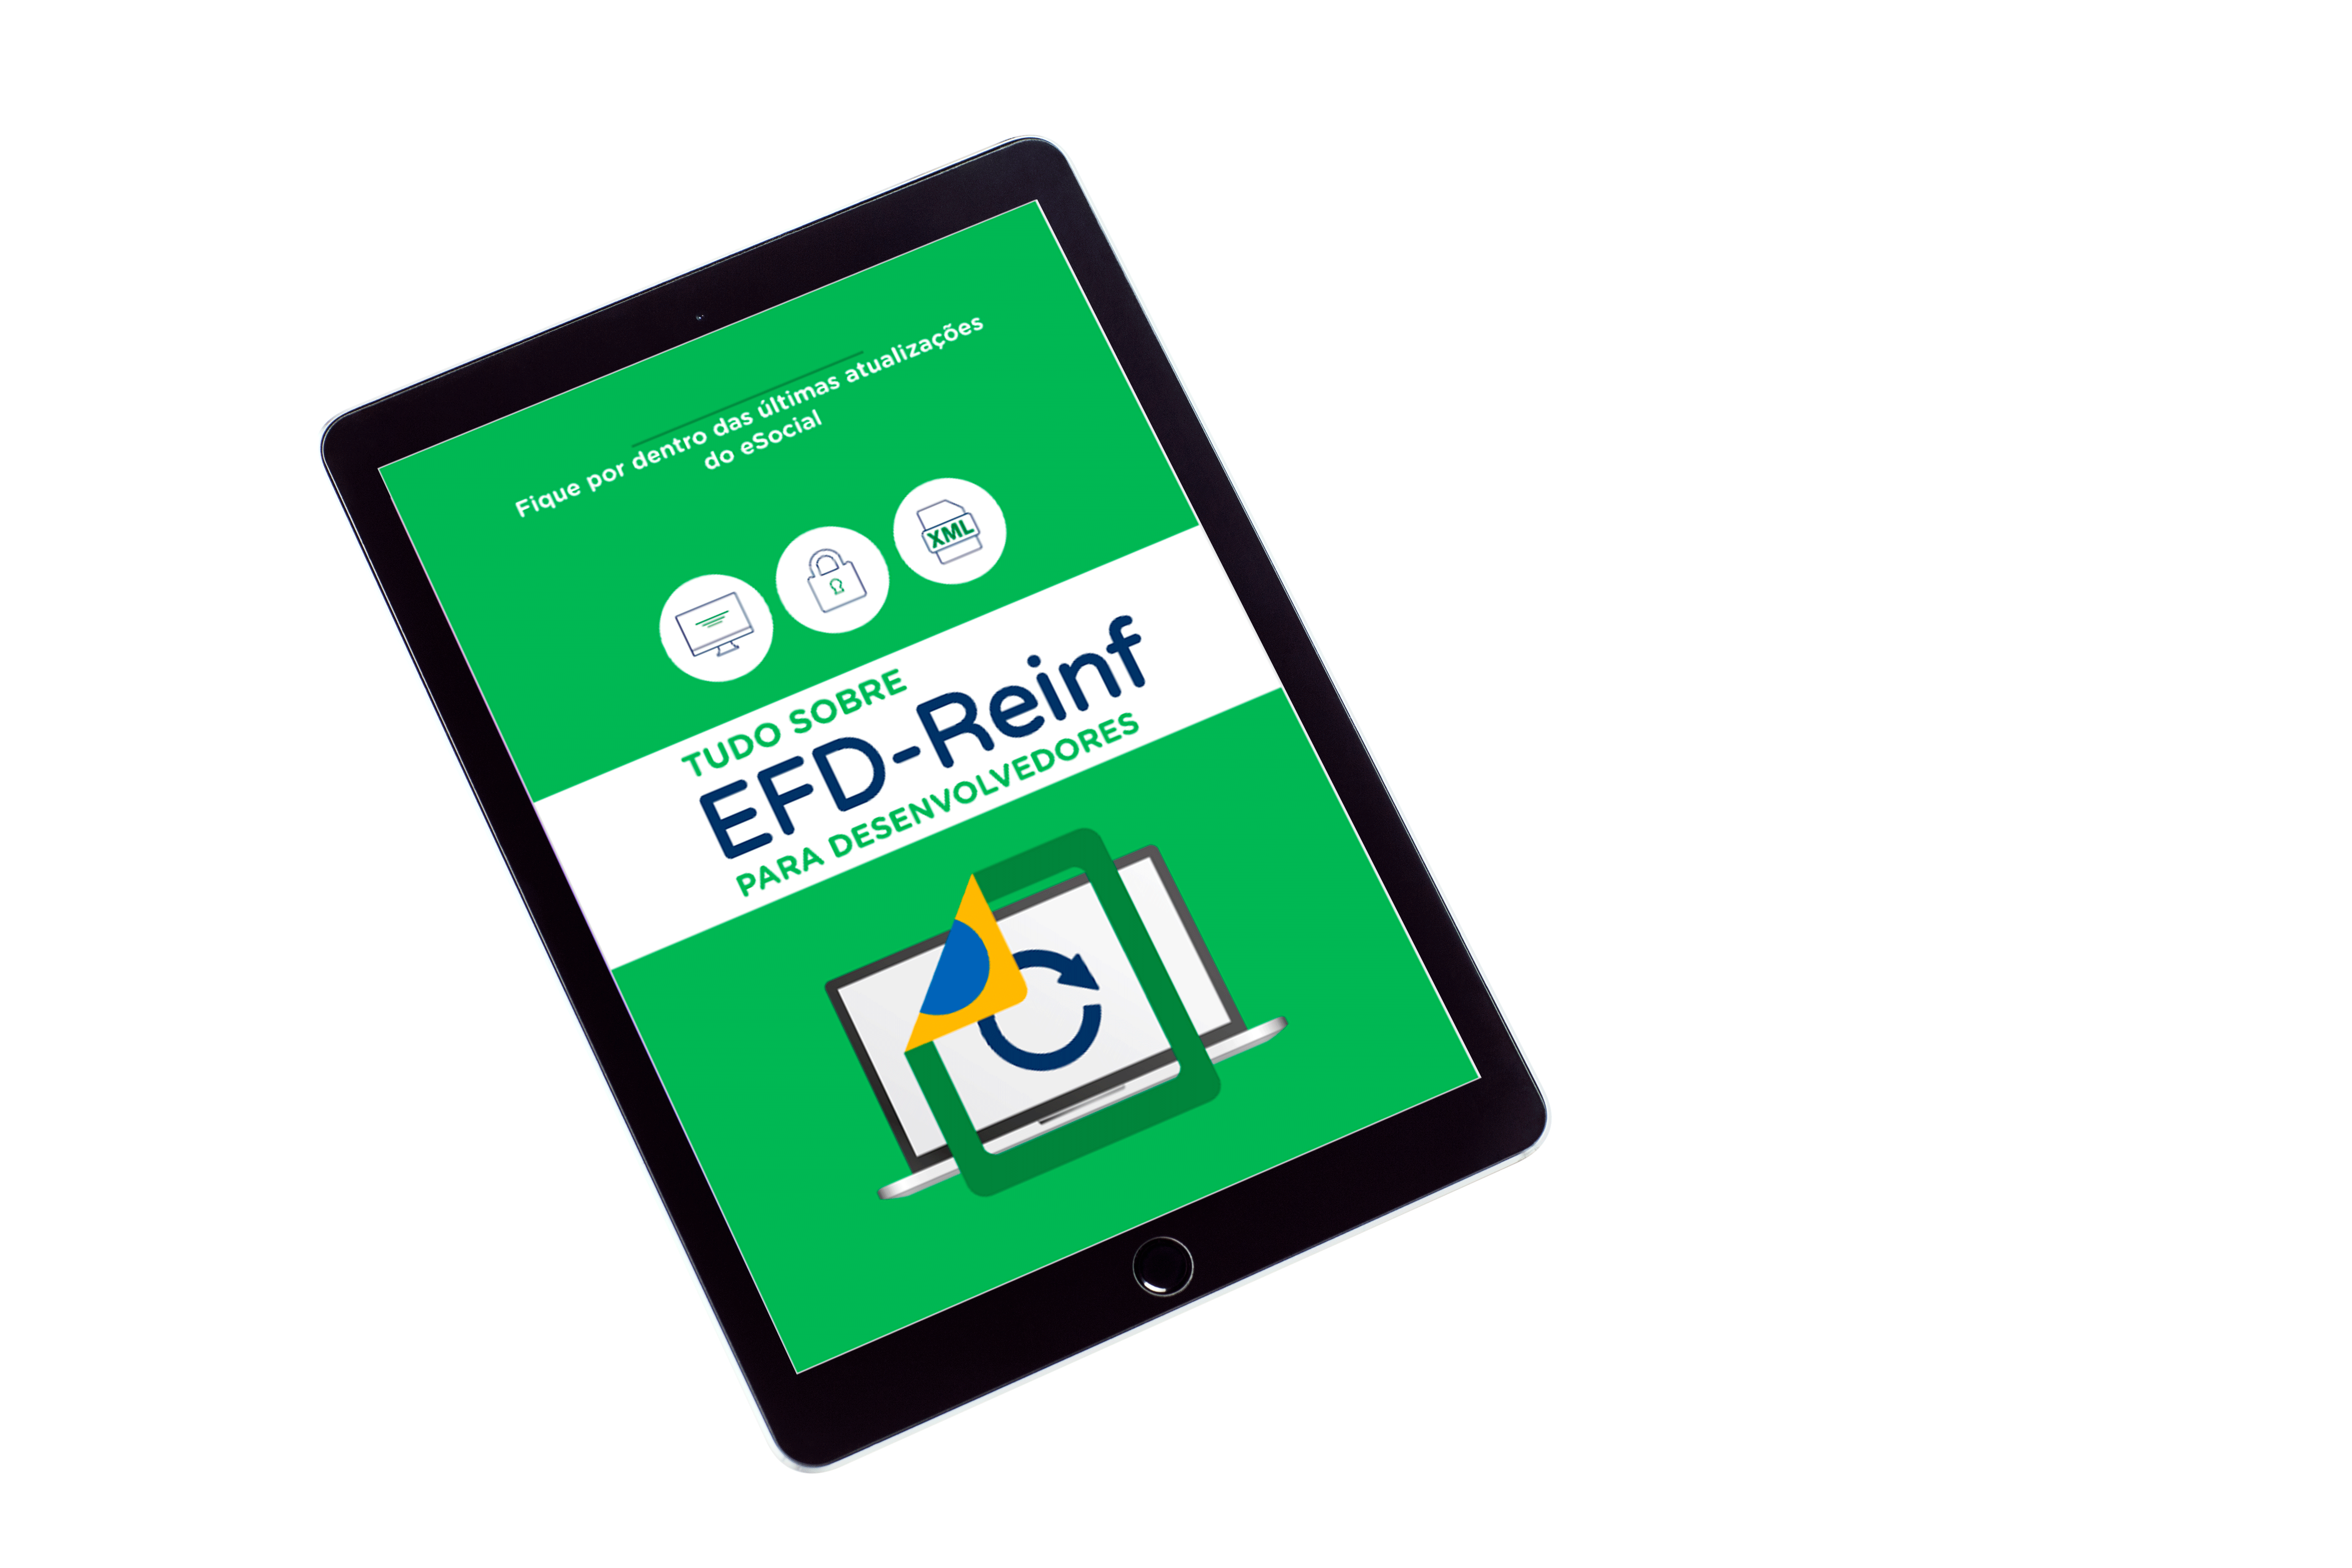 tablet com ebook efd-reinf